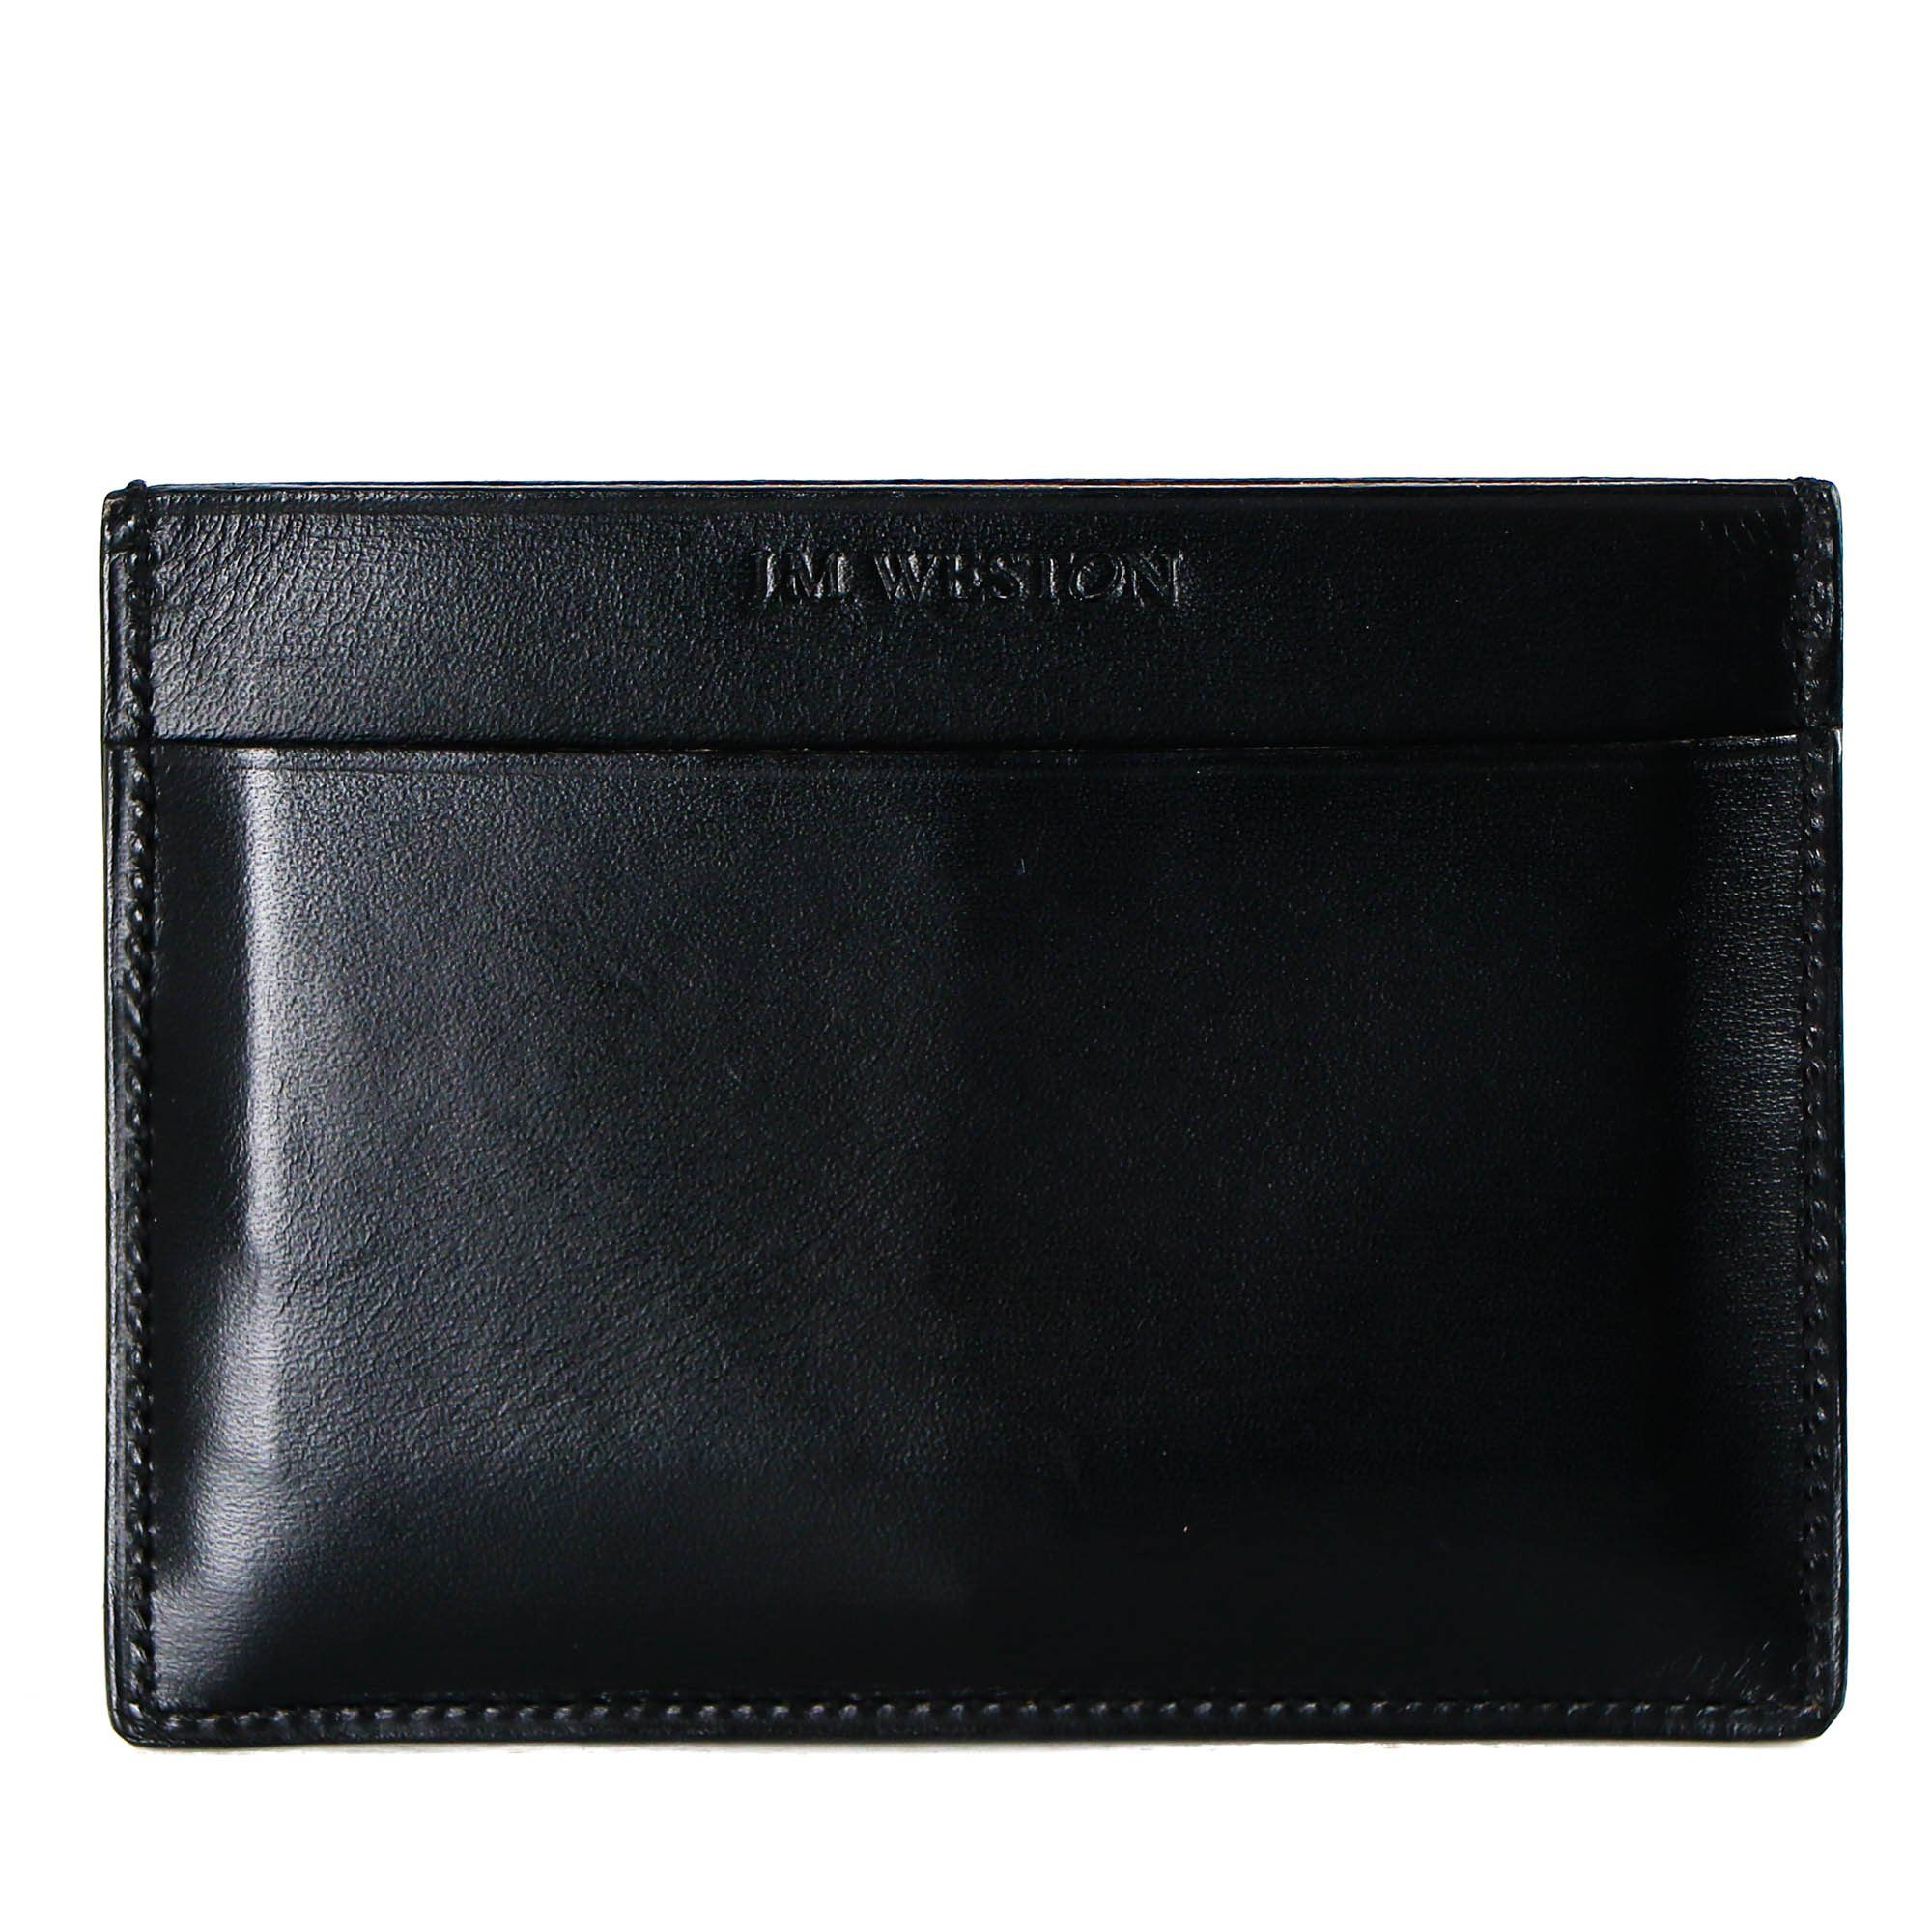 JM Weston Card Holder